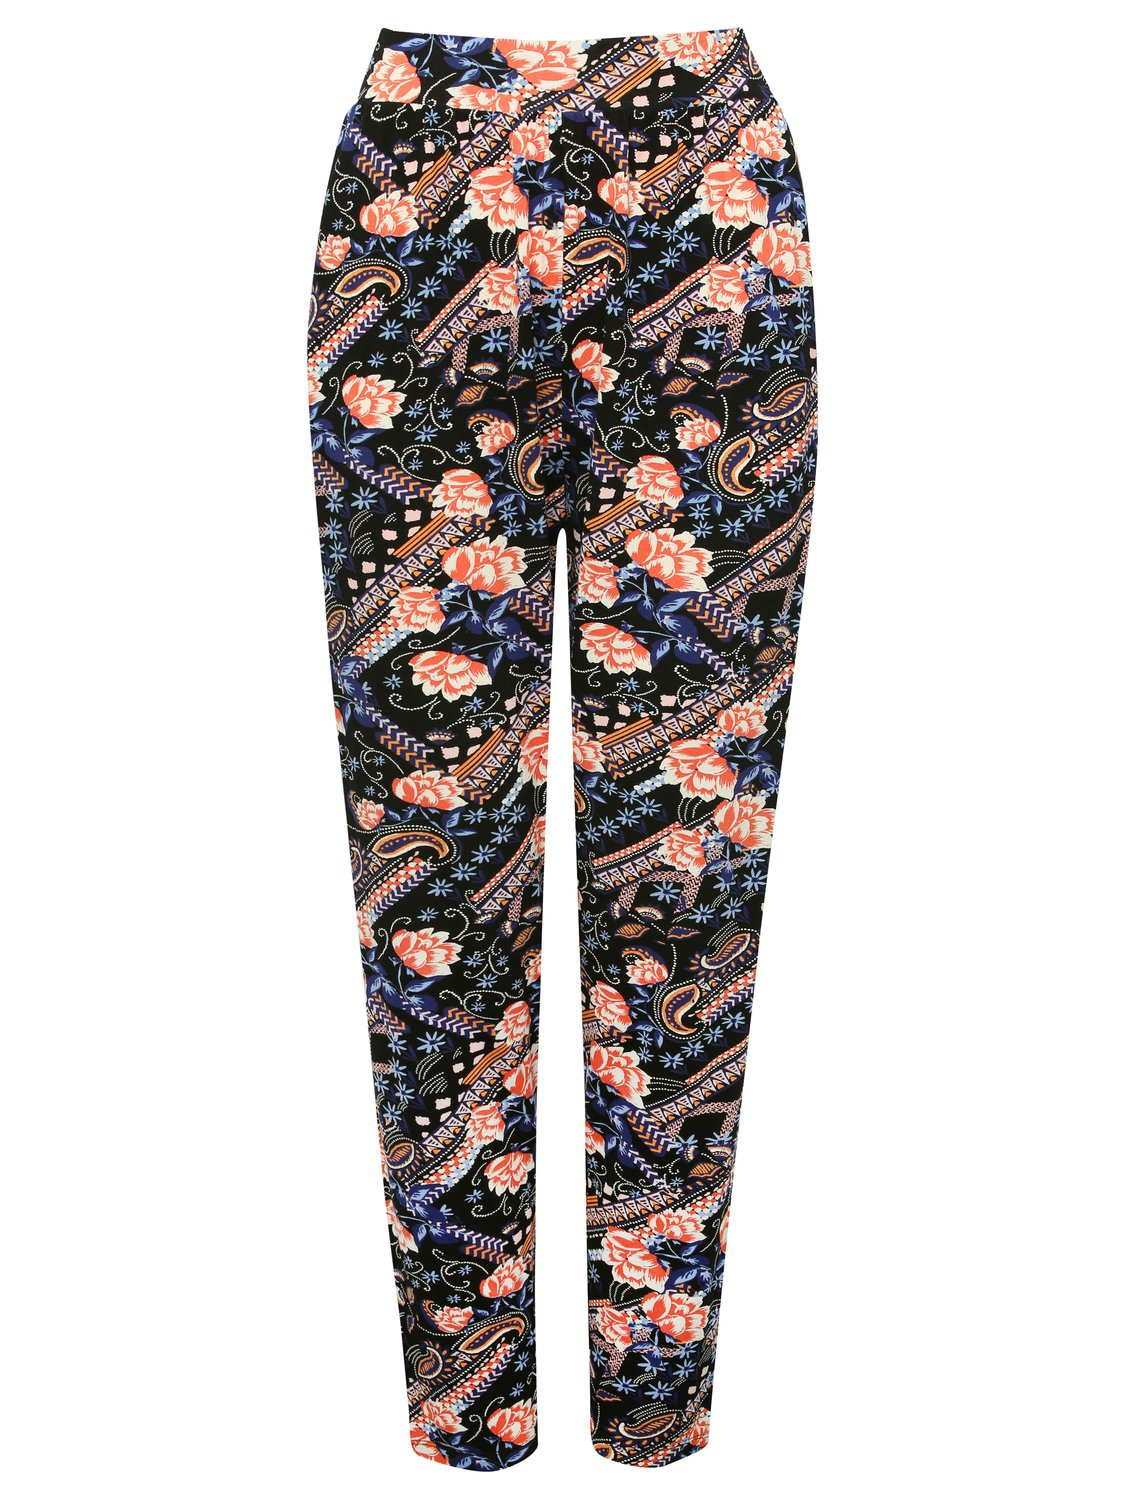 women's ladies floral harem trousers high waist tapered leg pull on